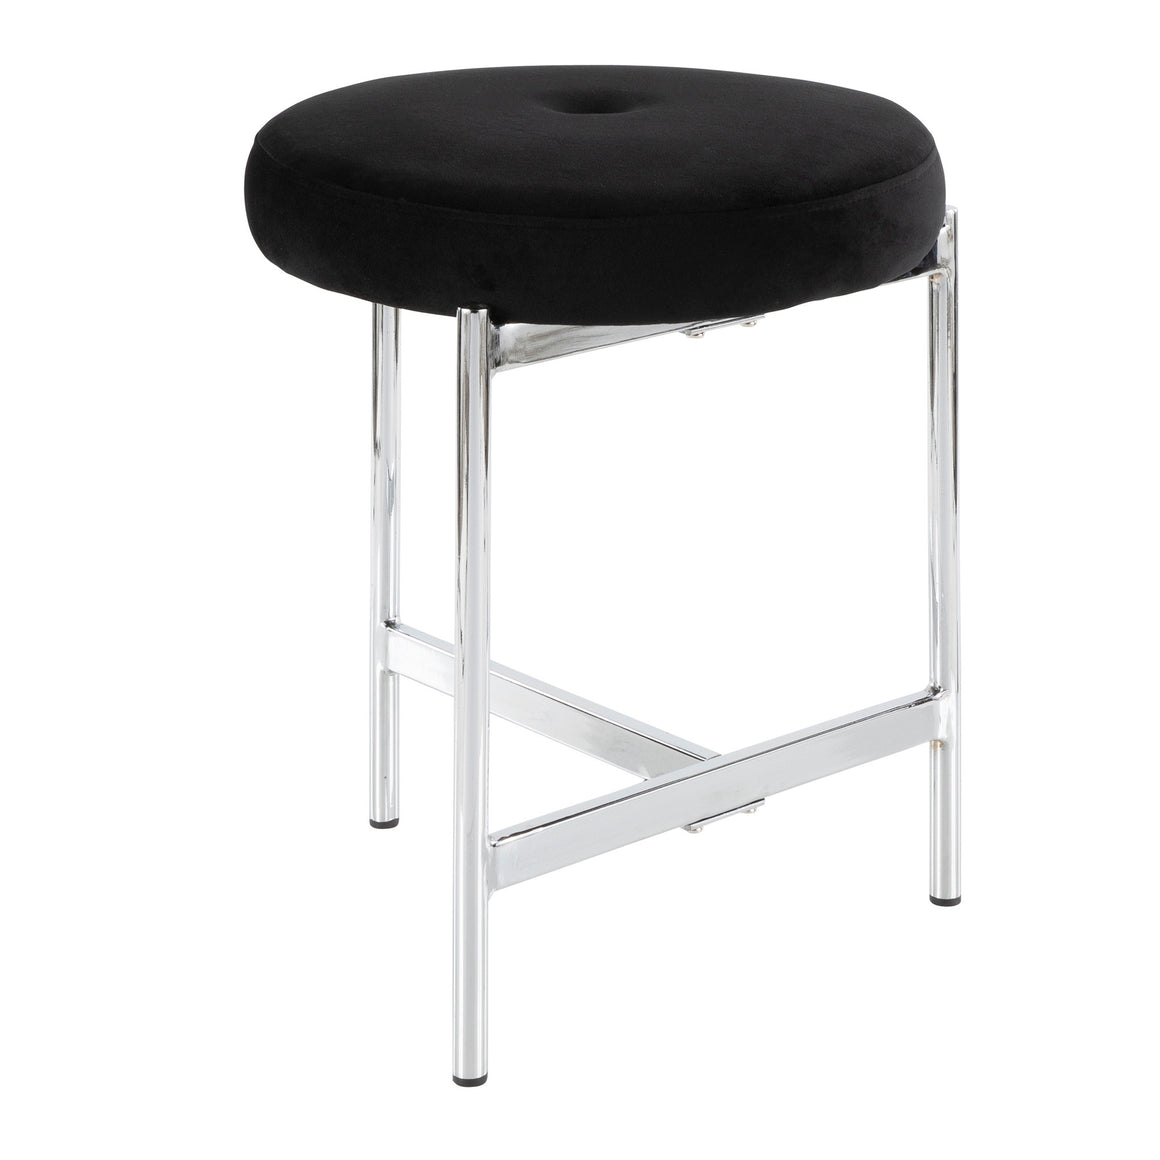 Chloe Contemporary Vanity Stool in Chrome and Black Velvet by LumiSource